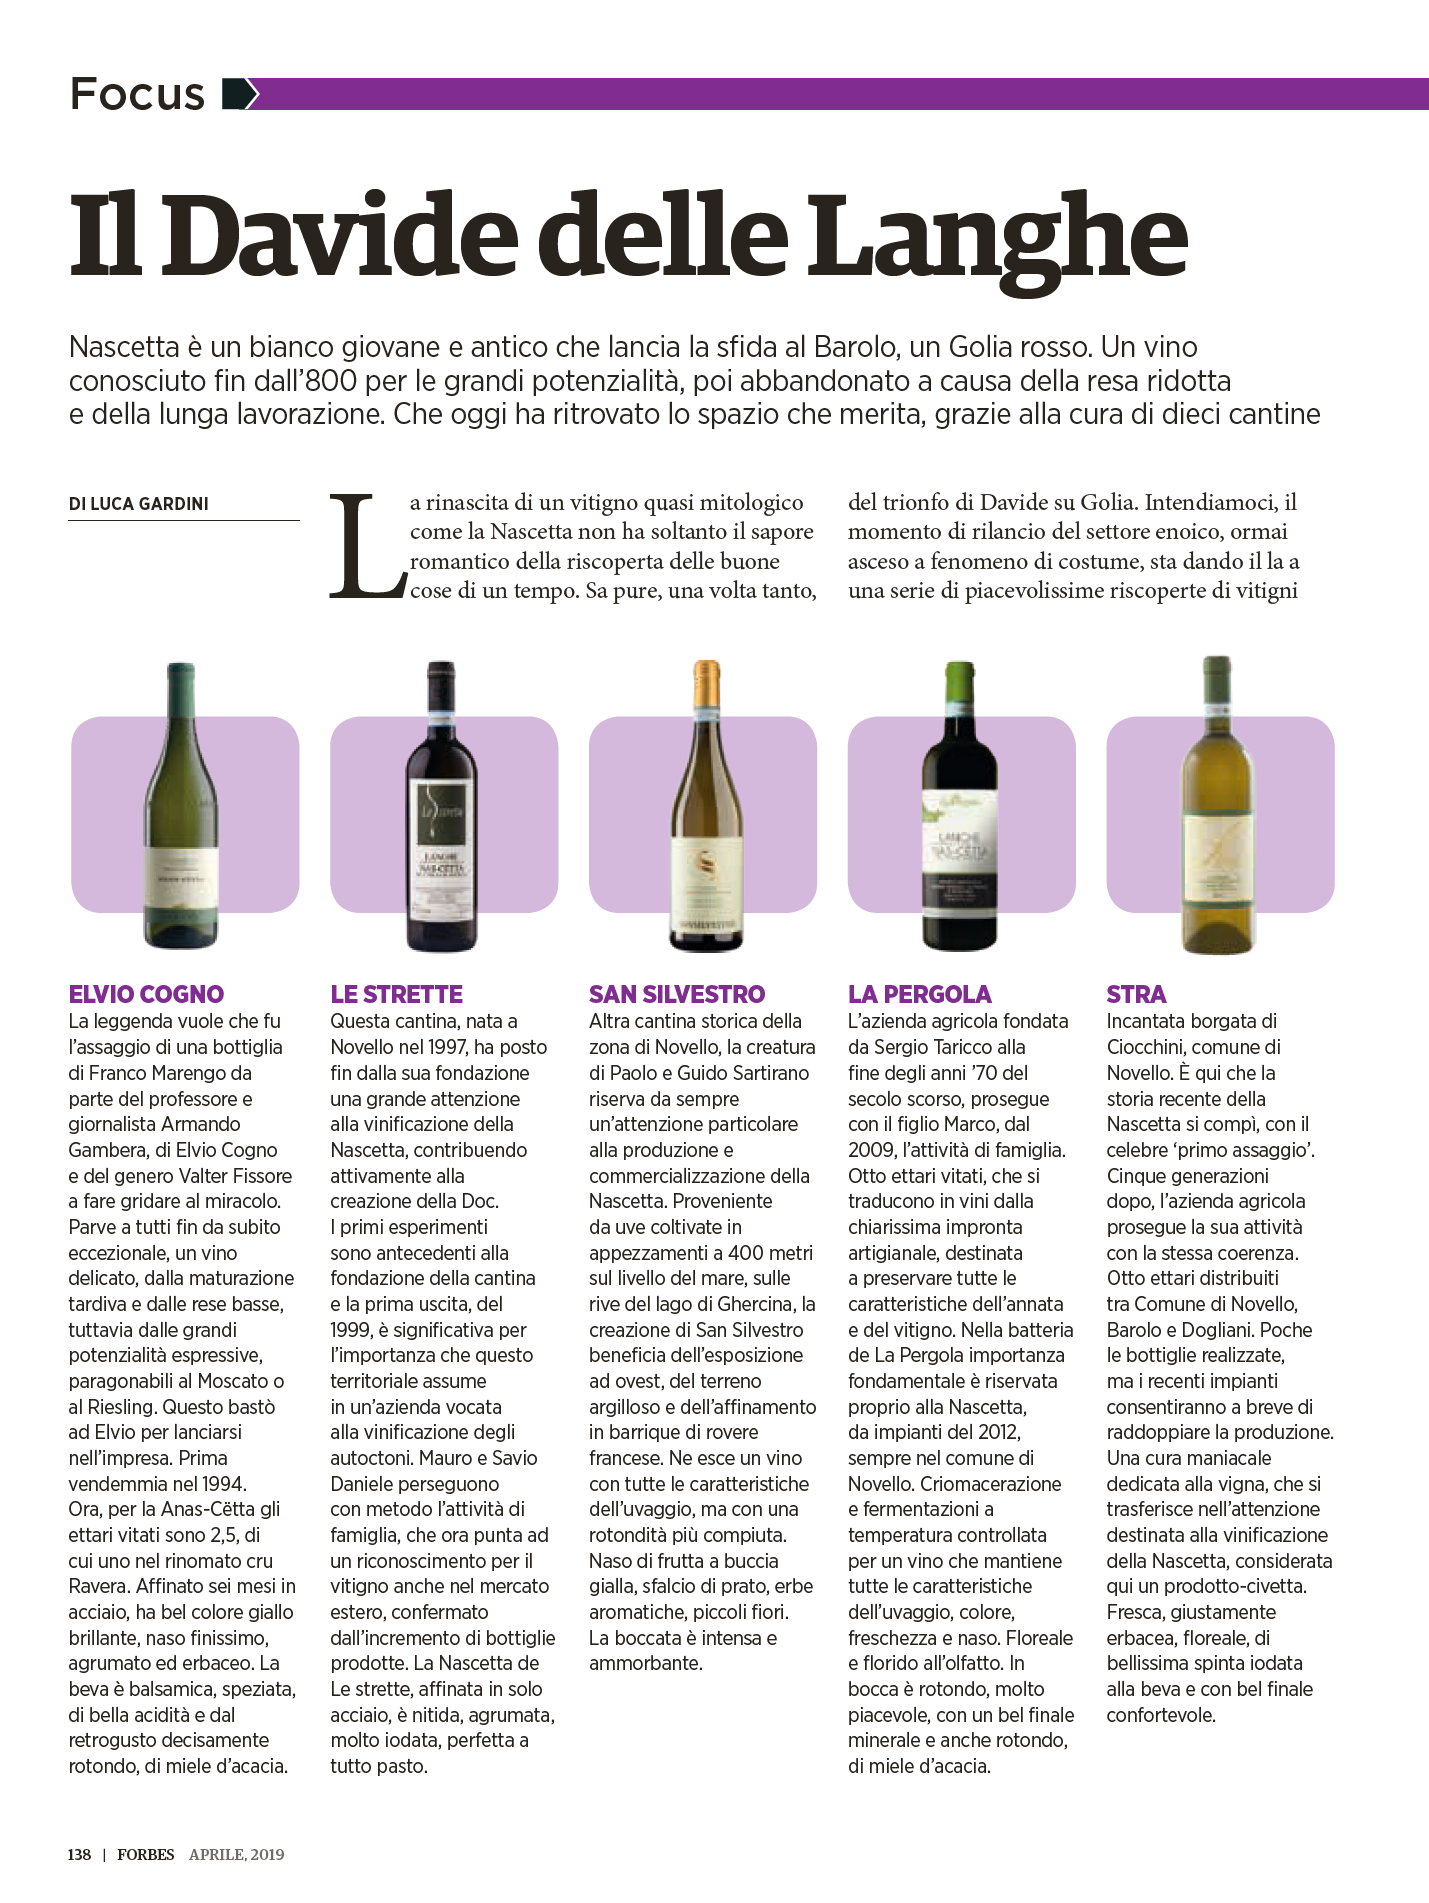 The David of the Langhe